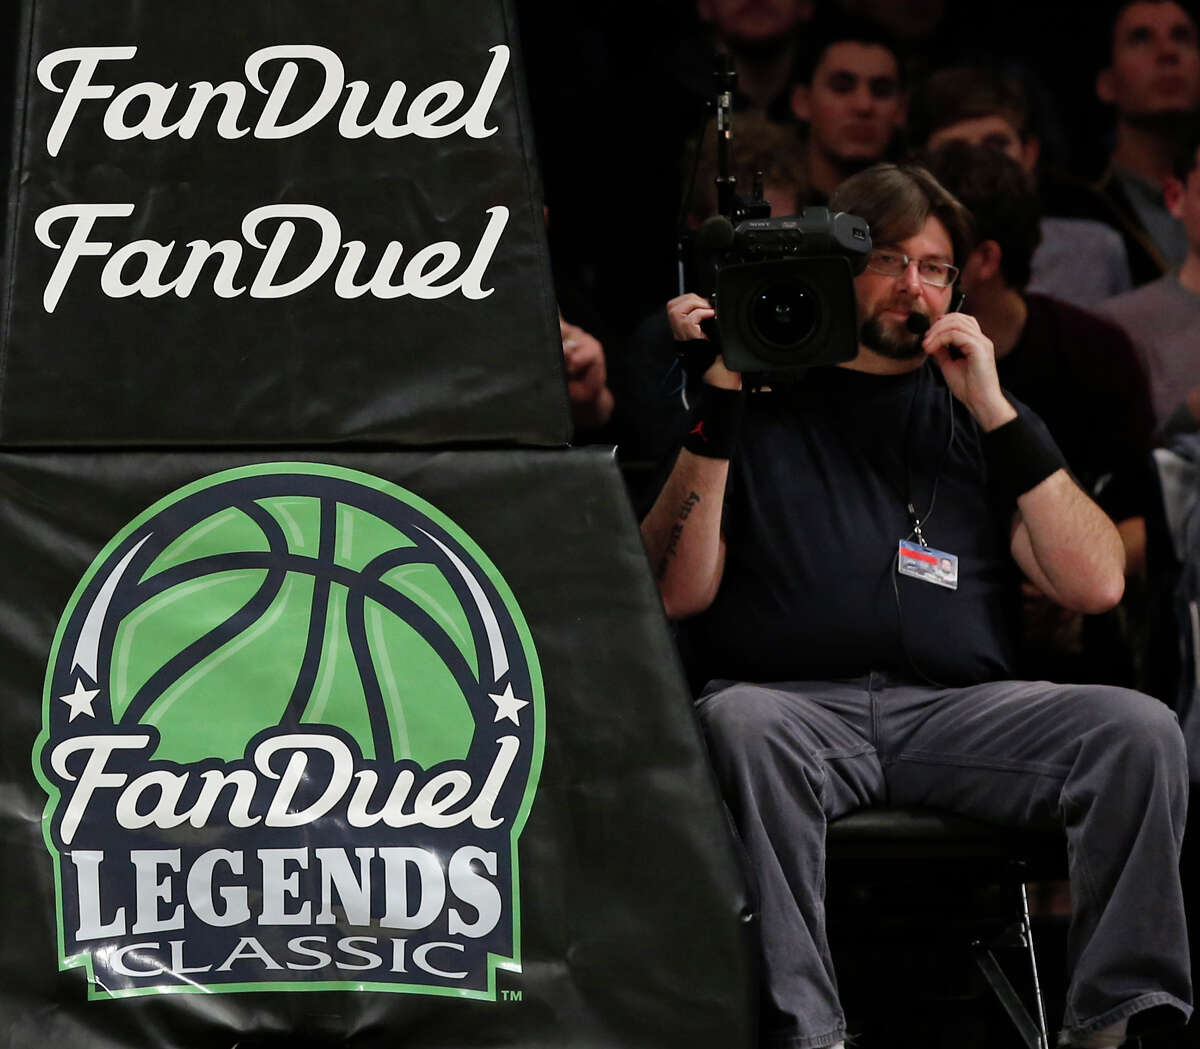 In this photo taken on Tuesday, Nov. 24, 2015, FanDuel advertising covers the post for an NCAA college basketball matchup in the FanDuel Legends Classic consolation game, at the Barclays Center in New York. A state judge has barred daily fantasy sports sites DraftKings and FanDuel from doing business in New York. The order issued Friday, Dec. 11, 2015, by state Supreme Court Justice Manuel Mendez also denied the country?'s two biggest daily fantasy sports sites?' attempts to block the state?'s attorney general enforcement action. (AP Photo/Kathy Willens) ORG XMIT: NY151